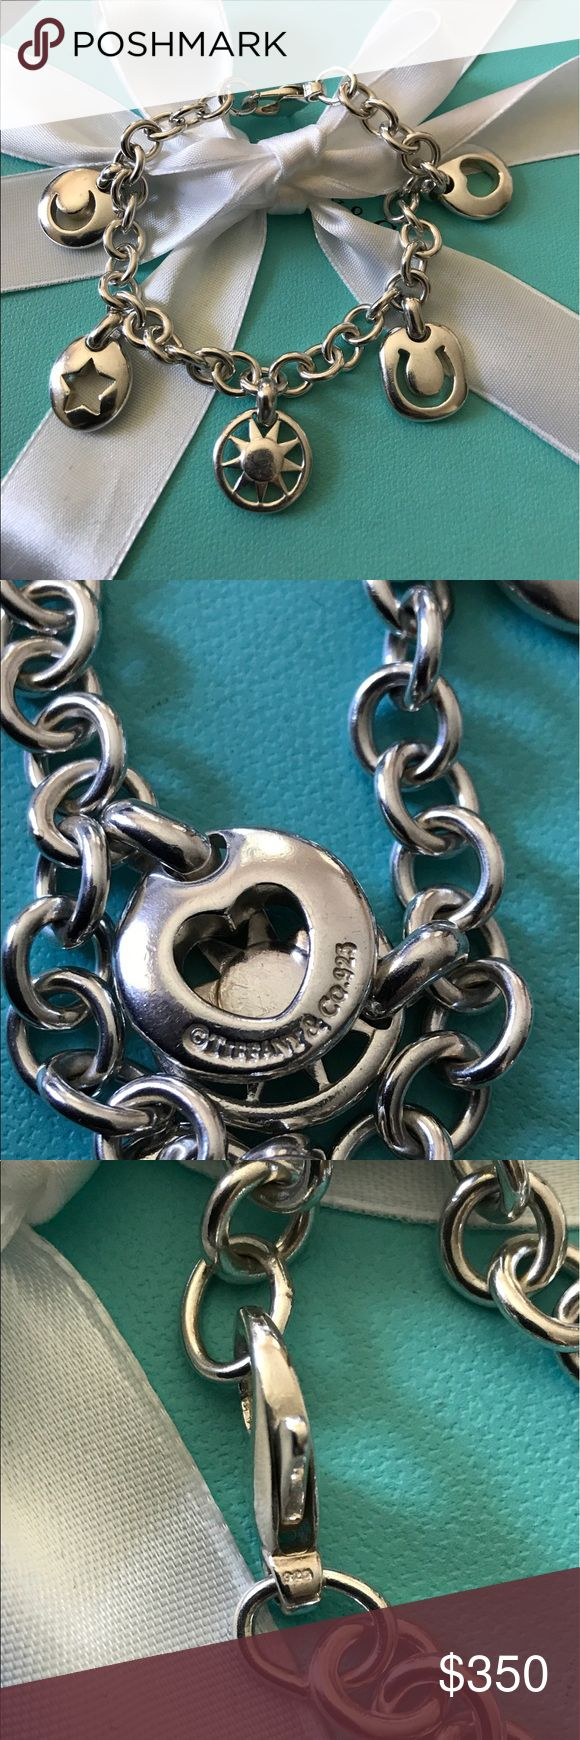 """Retired Tiffany & Co. Charm Bracelet Preloved and gently used Authentic Tiffany charm bracelet with heart ❤️ , horseshoe, sun ☀️ , star ⭐️ and moon 🌙 cutouts. This is a very unique and cute bracelet. There are signs of minor wear from daily use. Please look at the photos closely. Make me an offer! Comes with a pouch and a box. Size 7.5"""" Tiffany & Co. Jewelry Bracelets"""